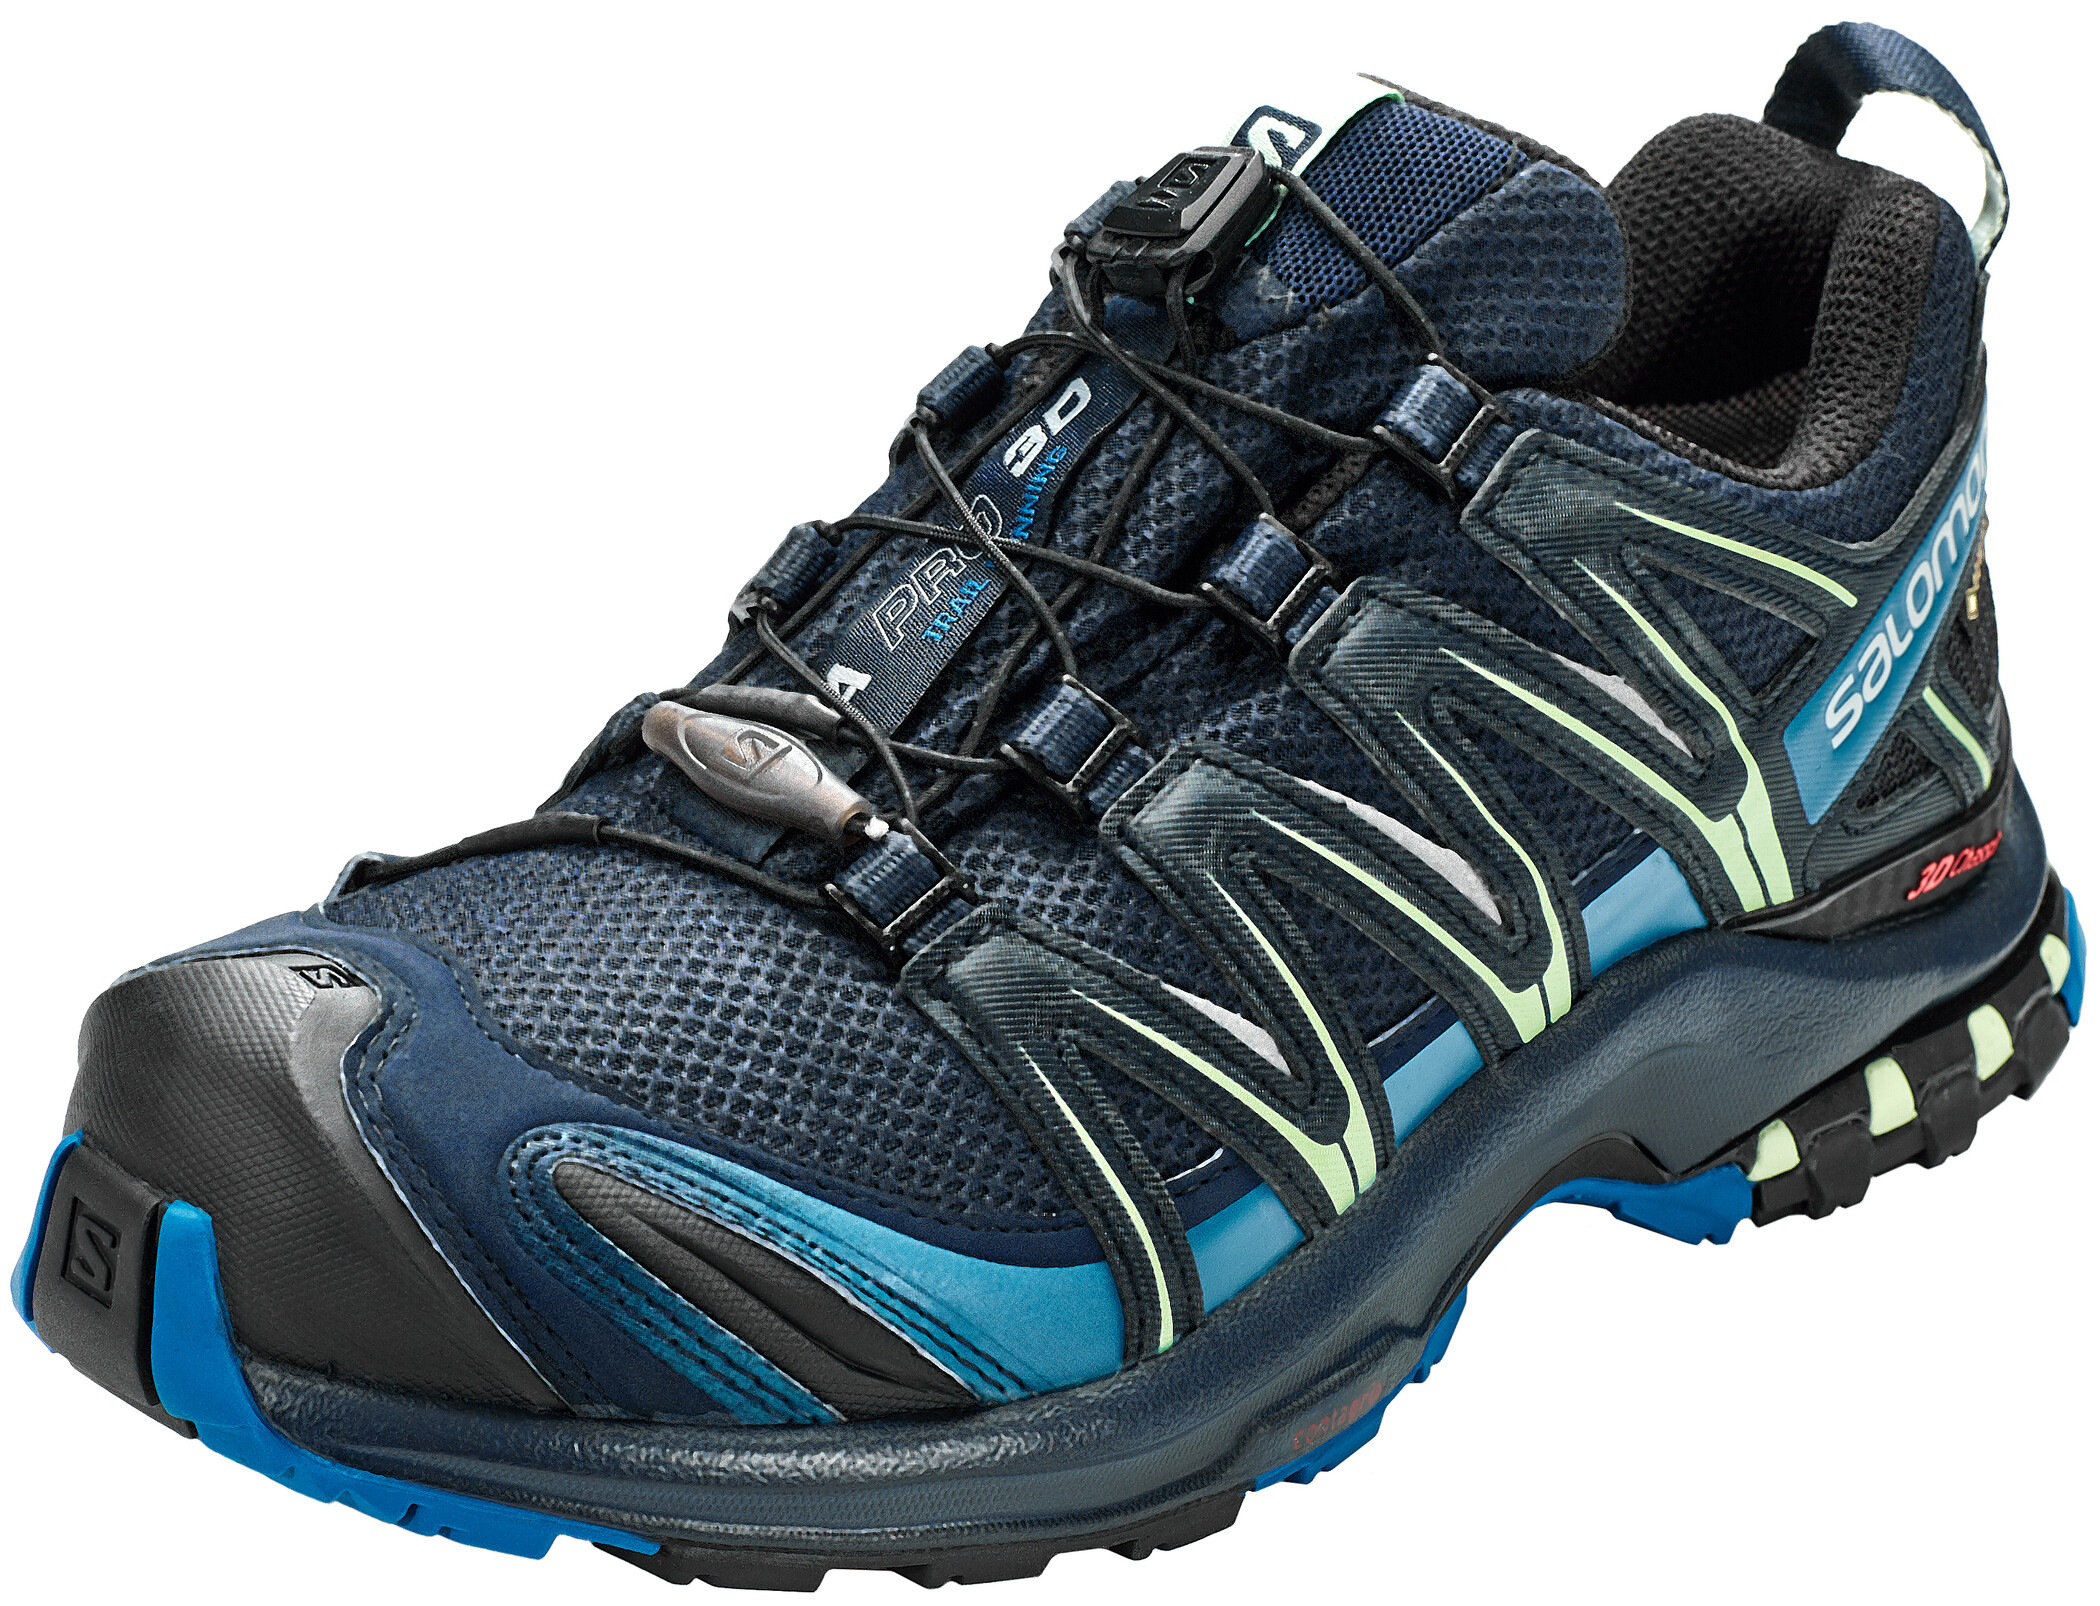 Salomon XA Pro 3D GTX Shoes Dam navy blazerlyons bluespruce stone